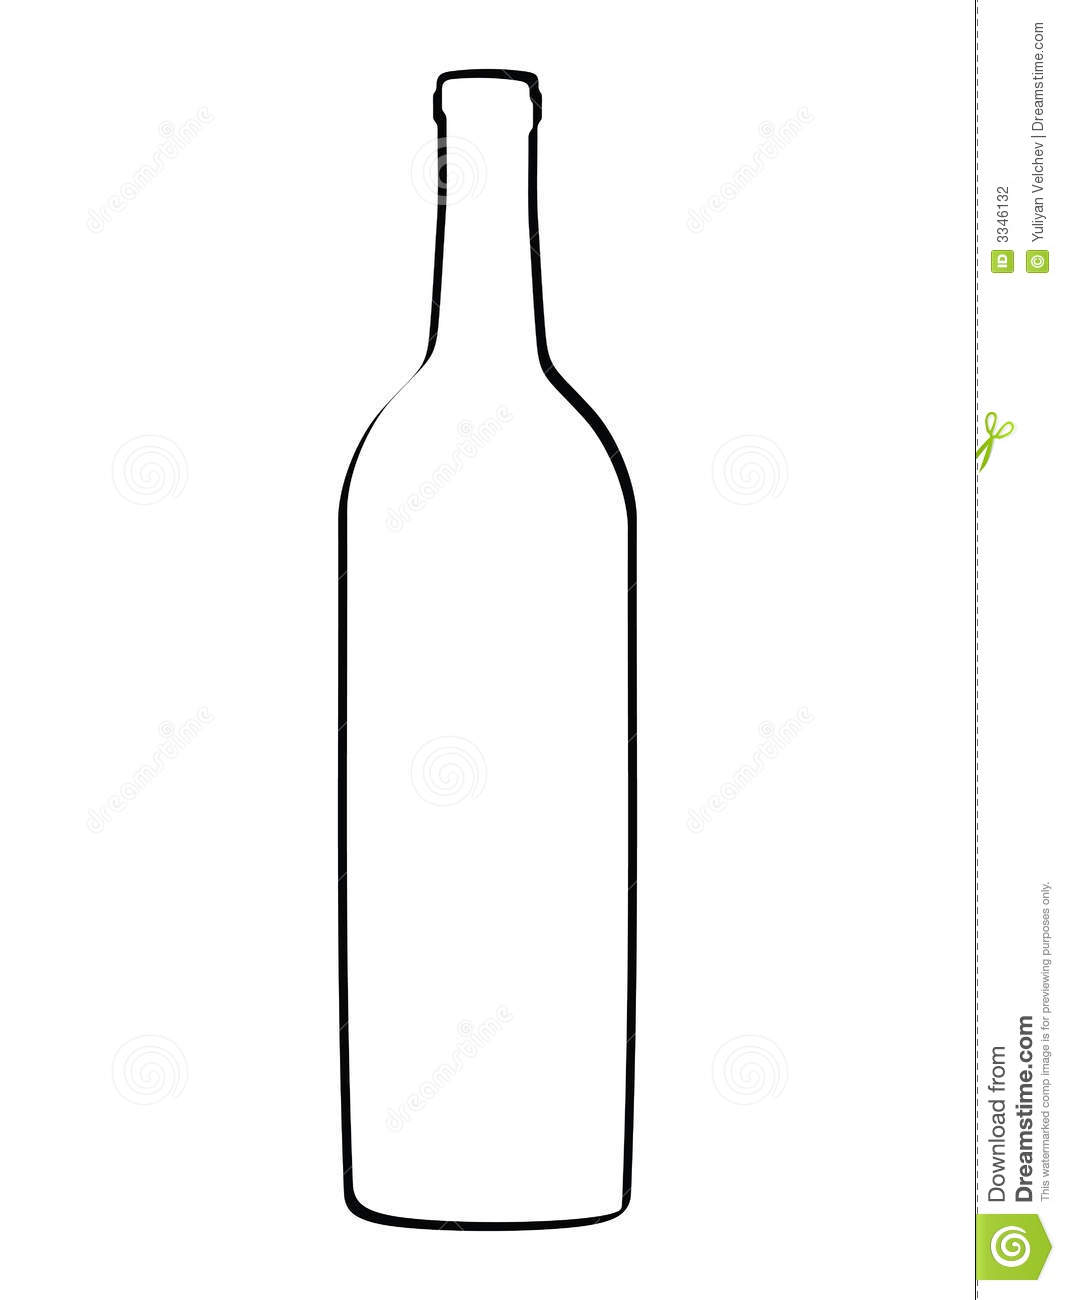 Bottle clipart #11, Download drawings